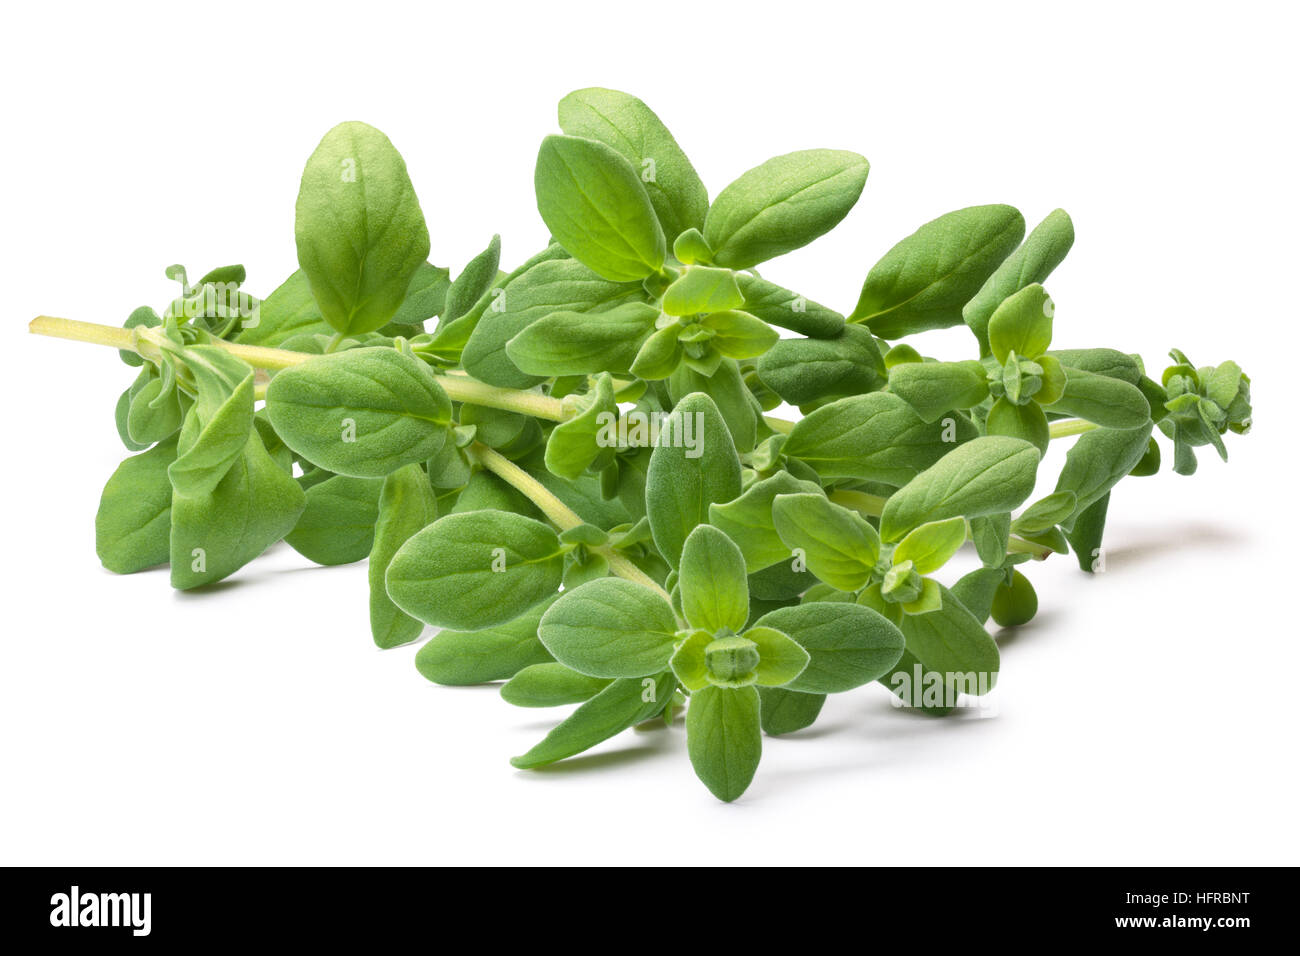 Fresh Marjoram (Origanum majorana), cut stem with leaves. Clipping paths, shadows separated - Stock Image